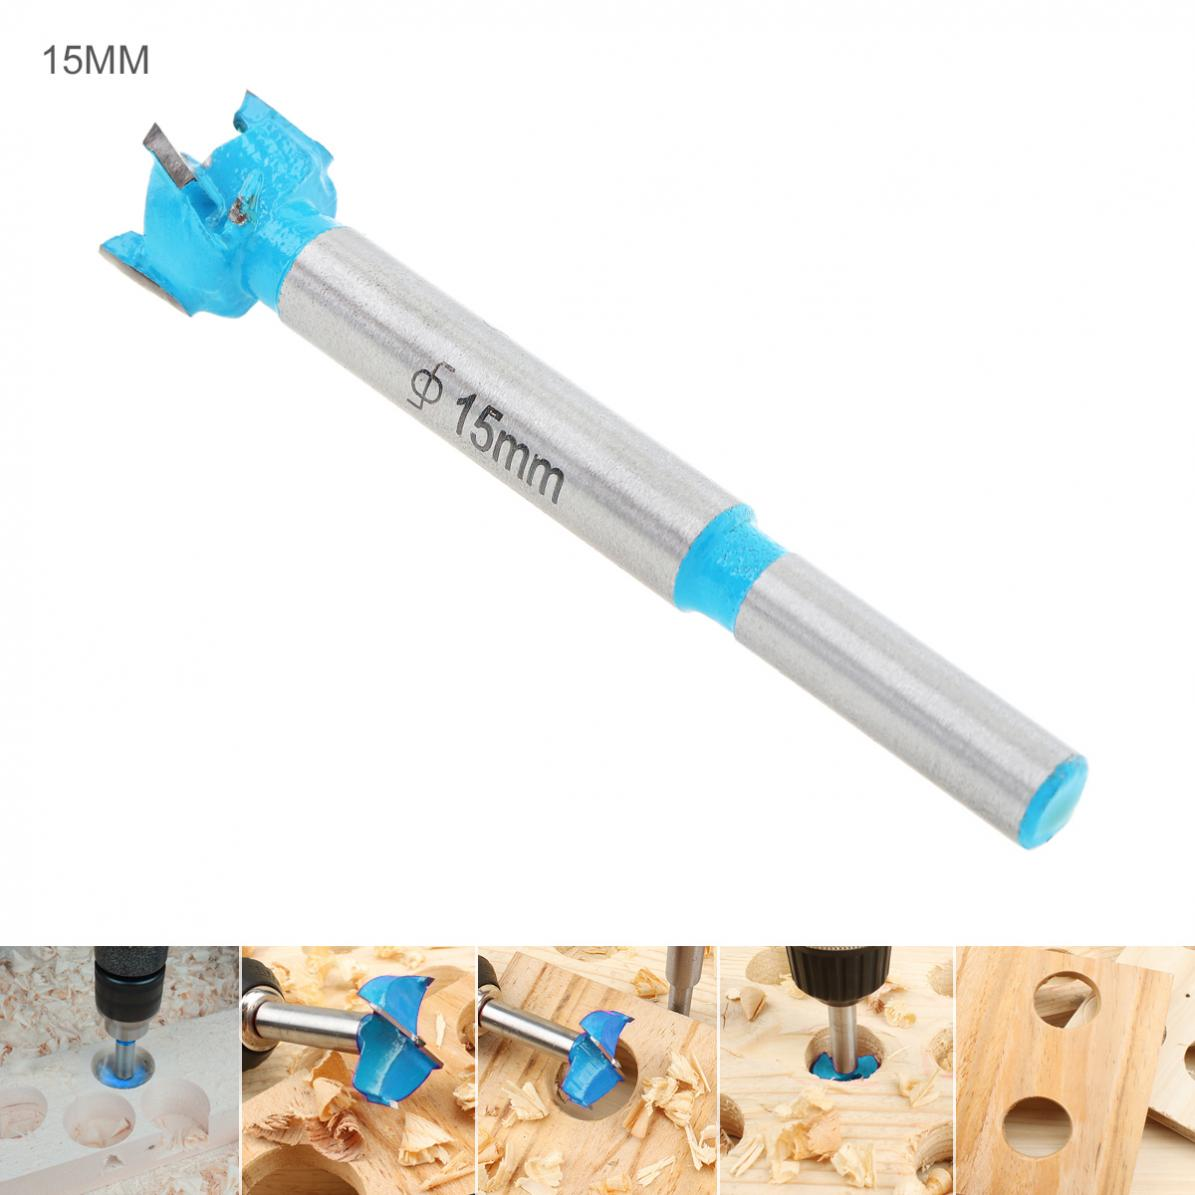 15mm Wood Hole Saw Wood Cutter Woodworking Tool For Wooden Products Perforation